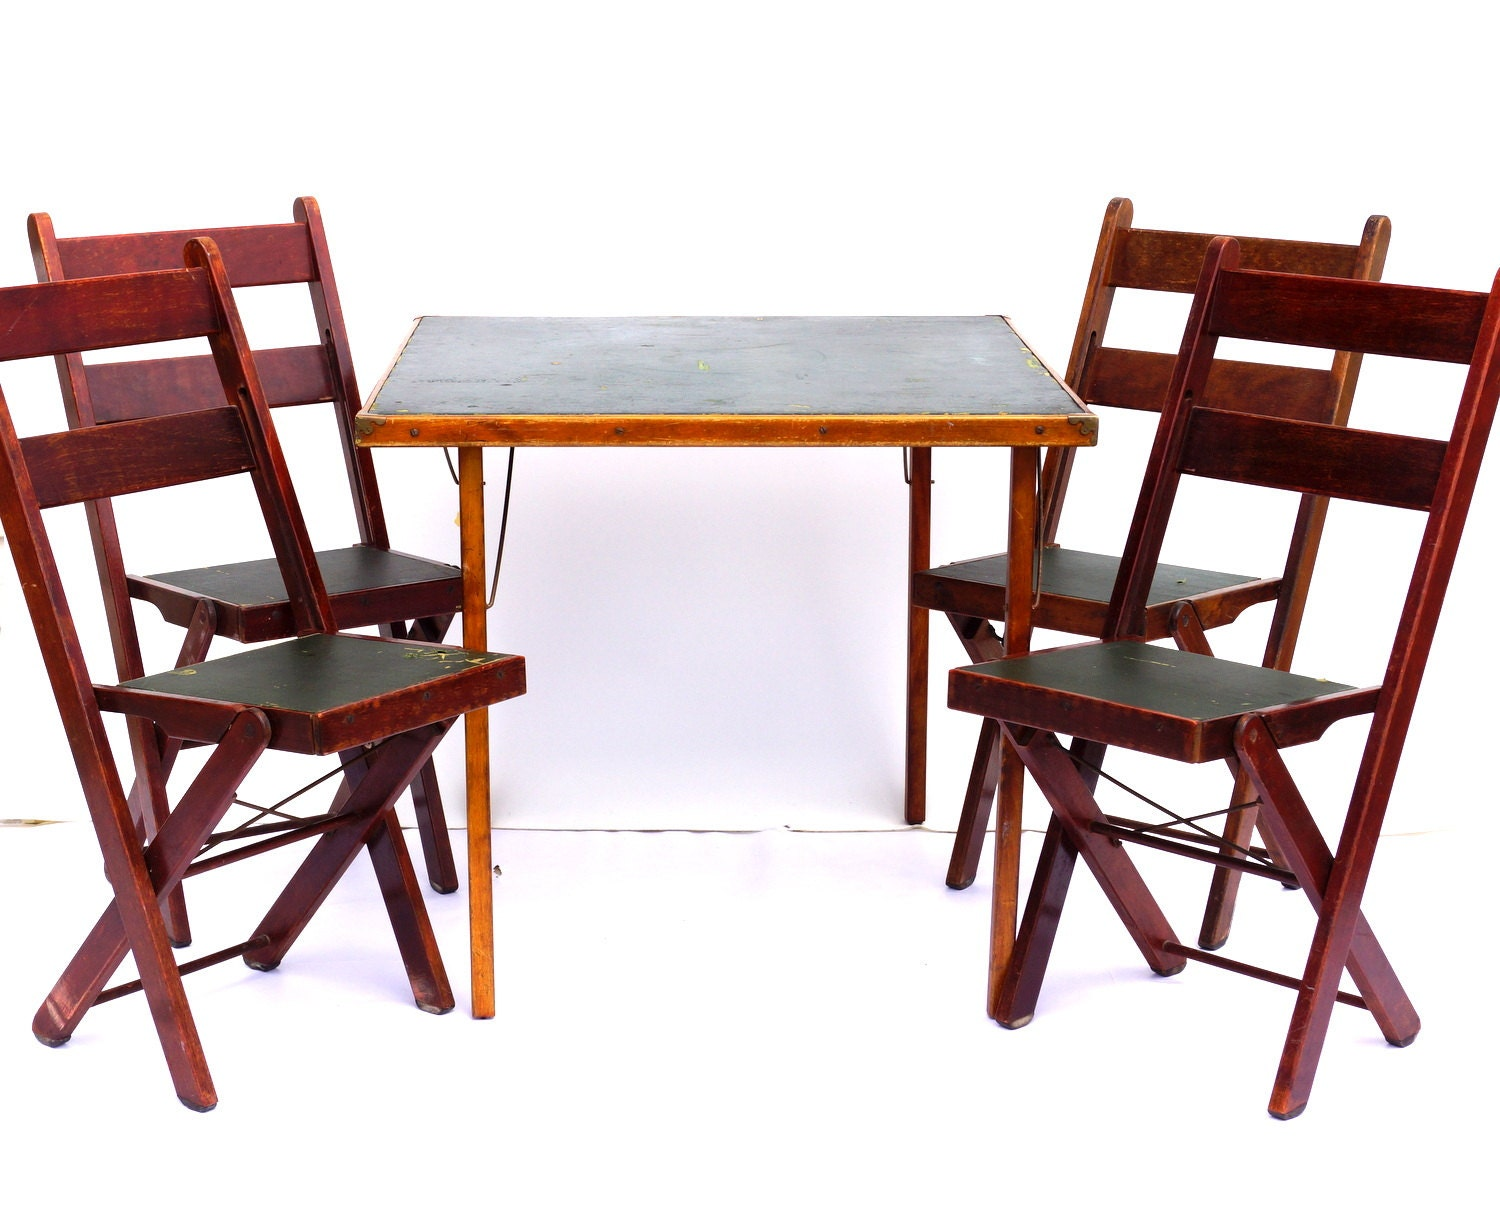 Vintage Antique Wood Folding Table And Chairs With Green